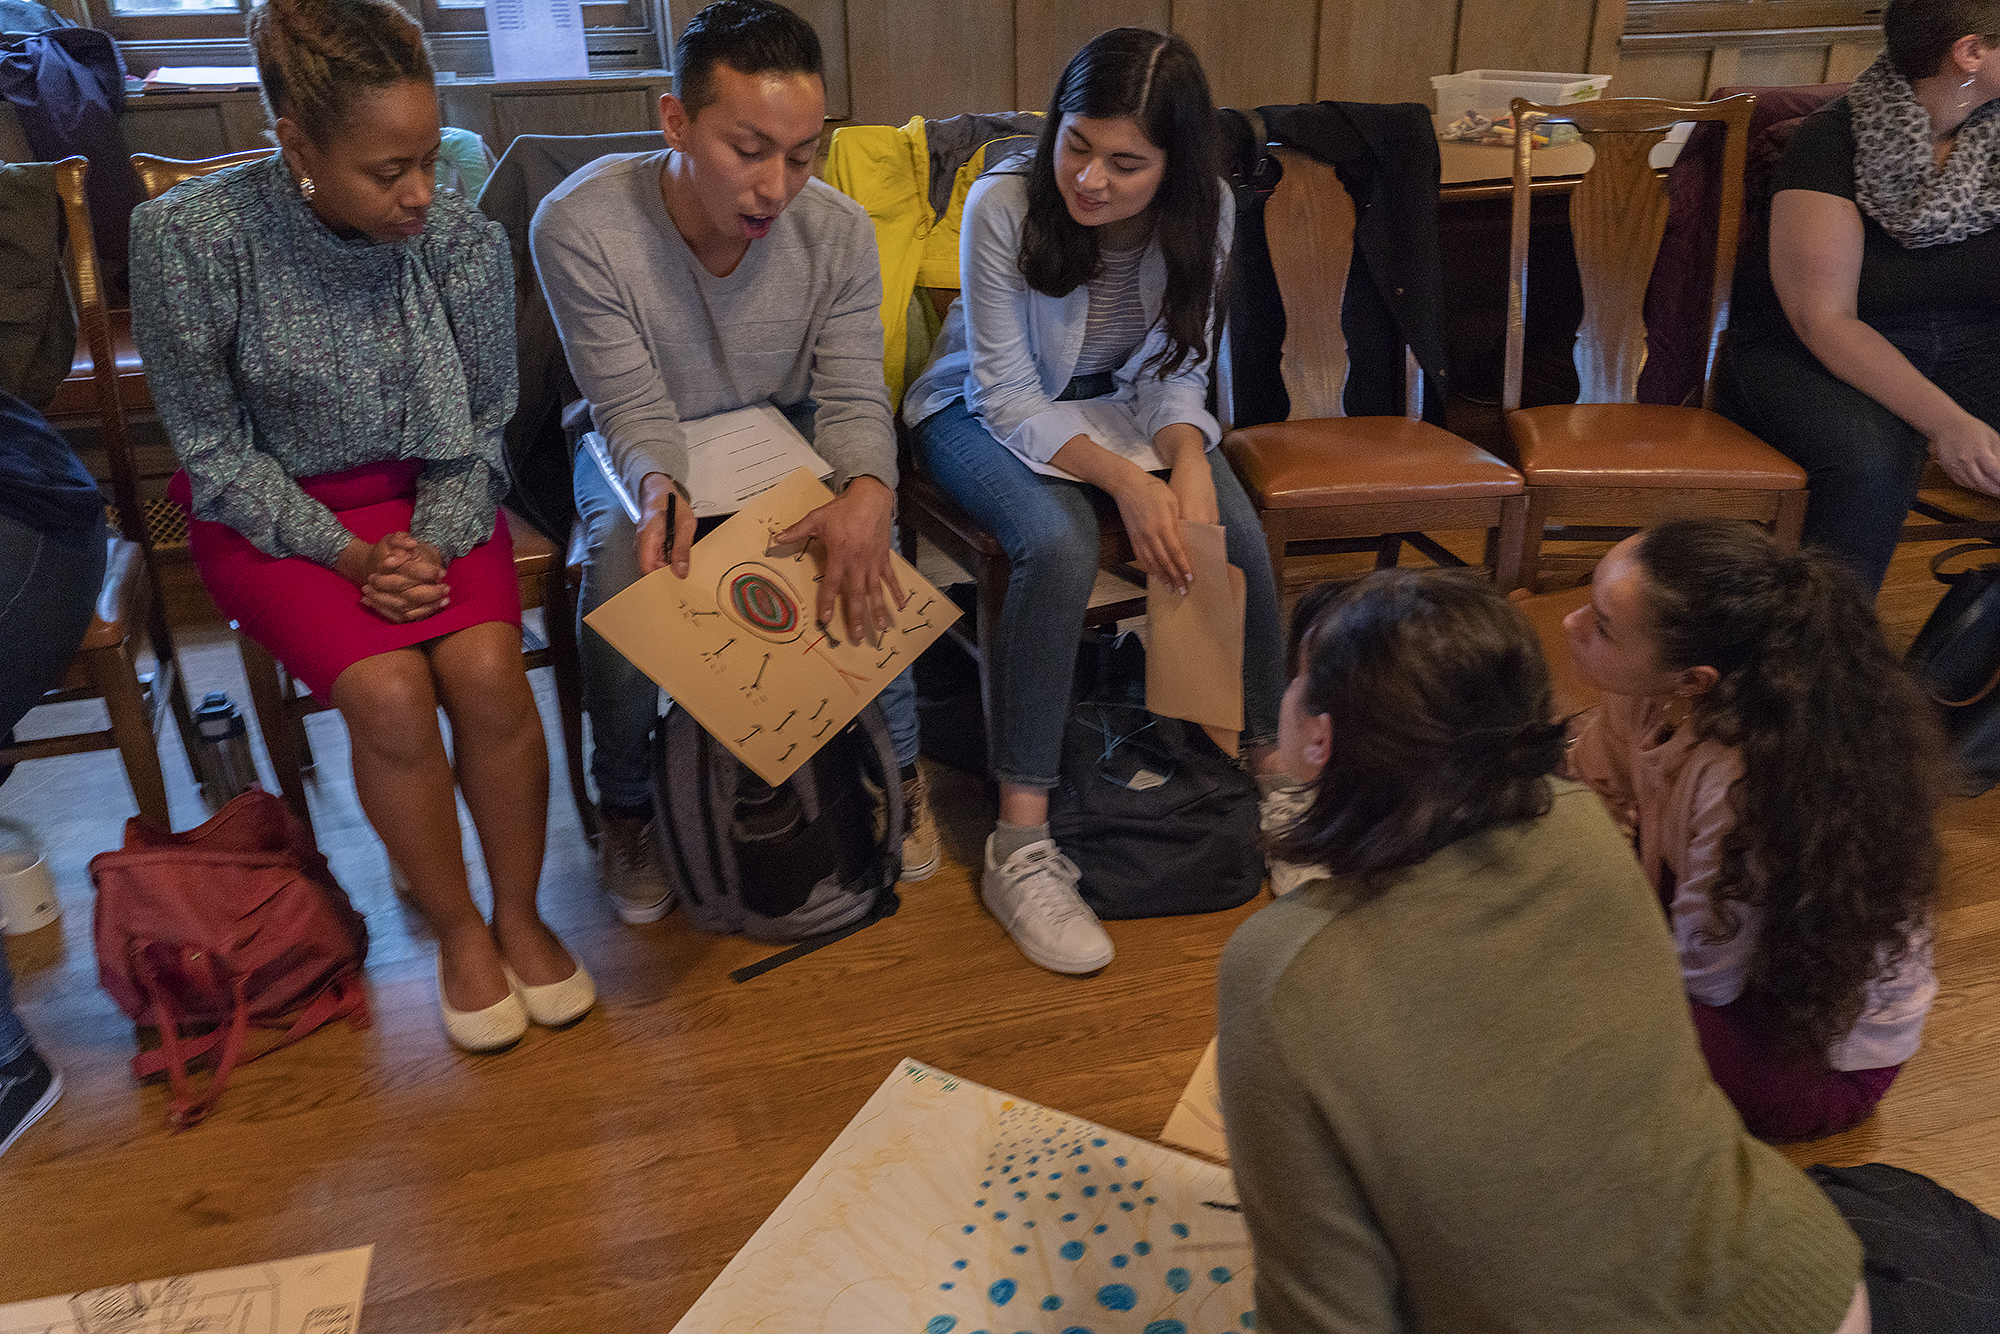 Image: Leah Gipson (at left, in pink skirt) works with participants in an art therapy workshop at Hull-House in October. Photo courtesy of Jane Addams Hull-House Museum / Jesse Meredith.